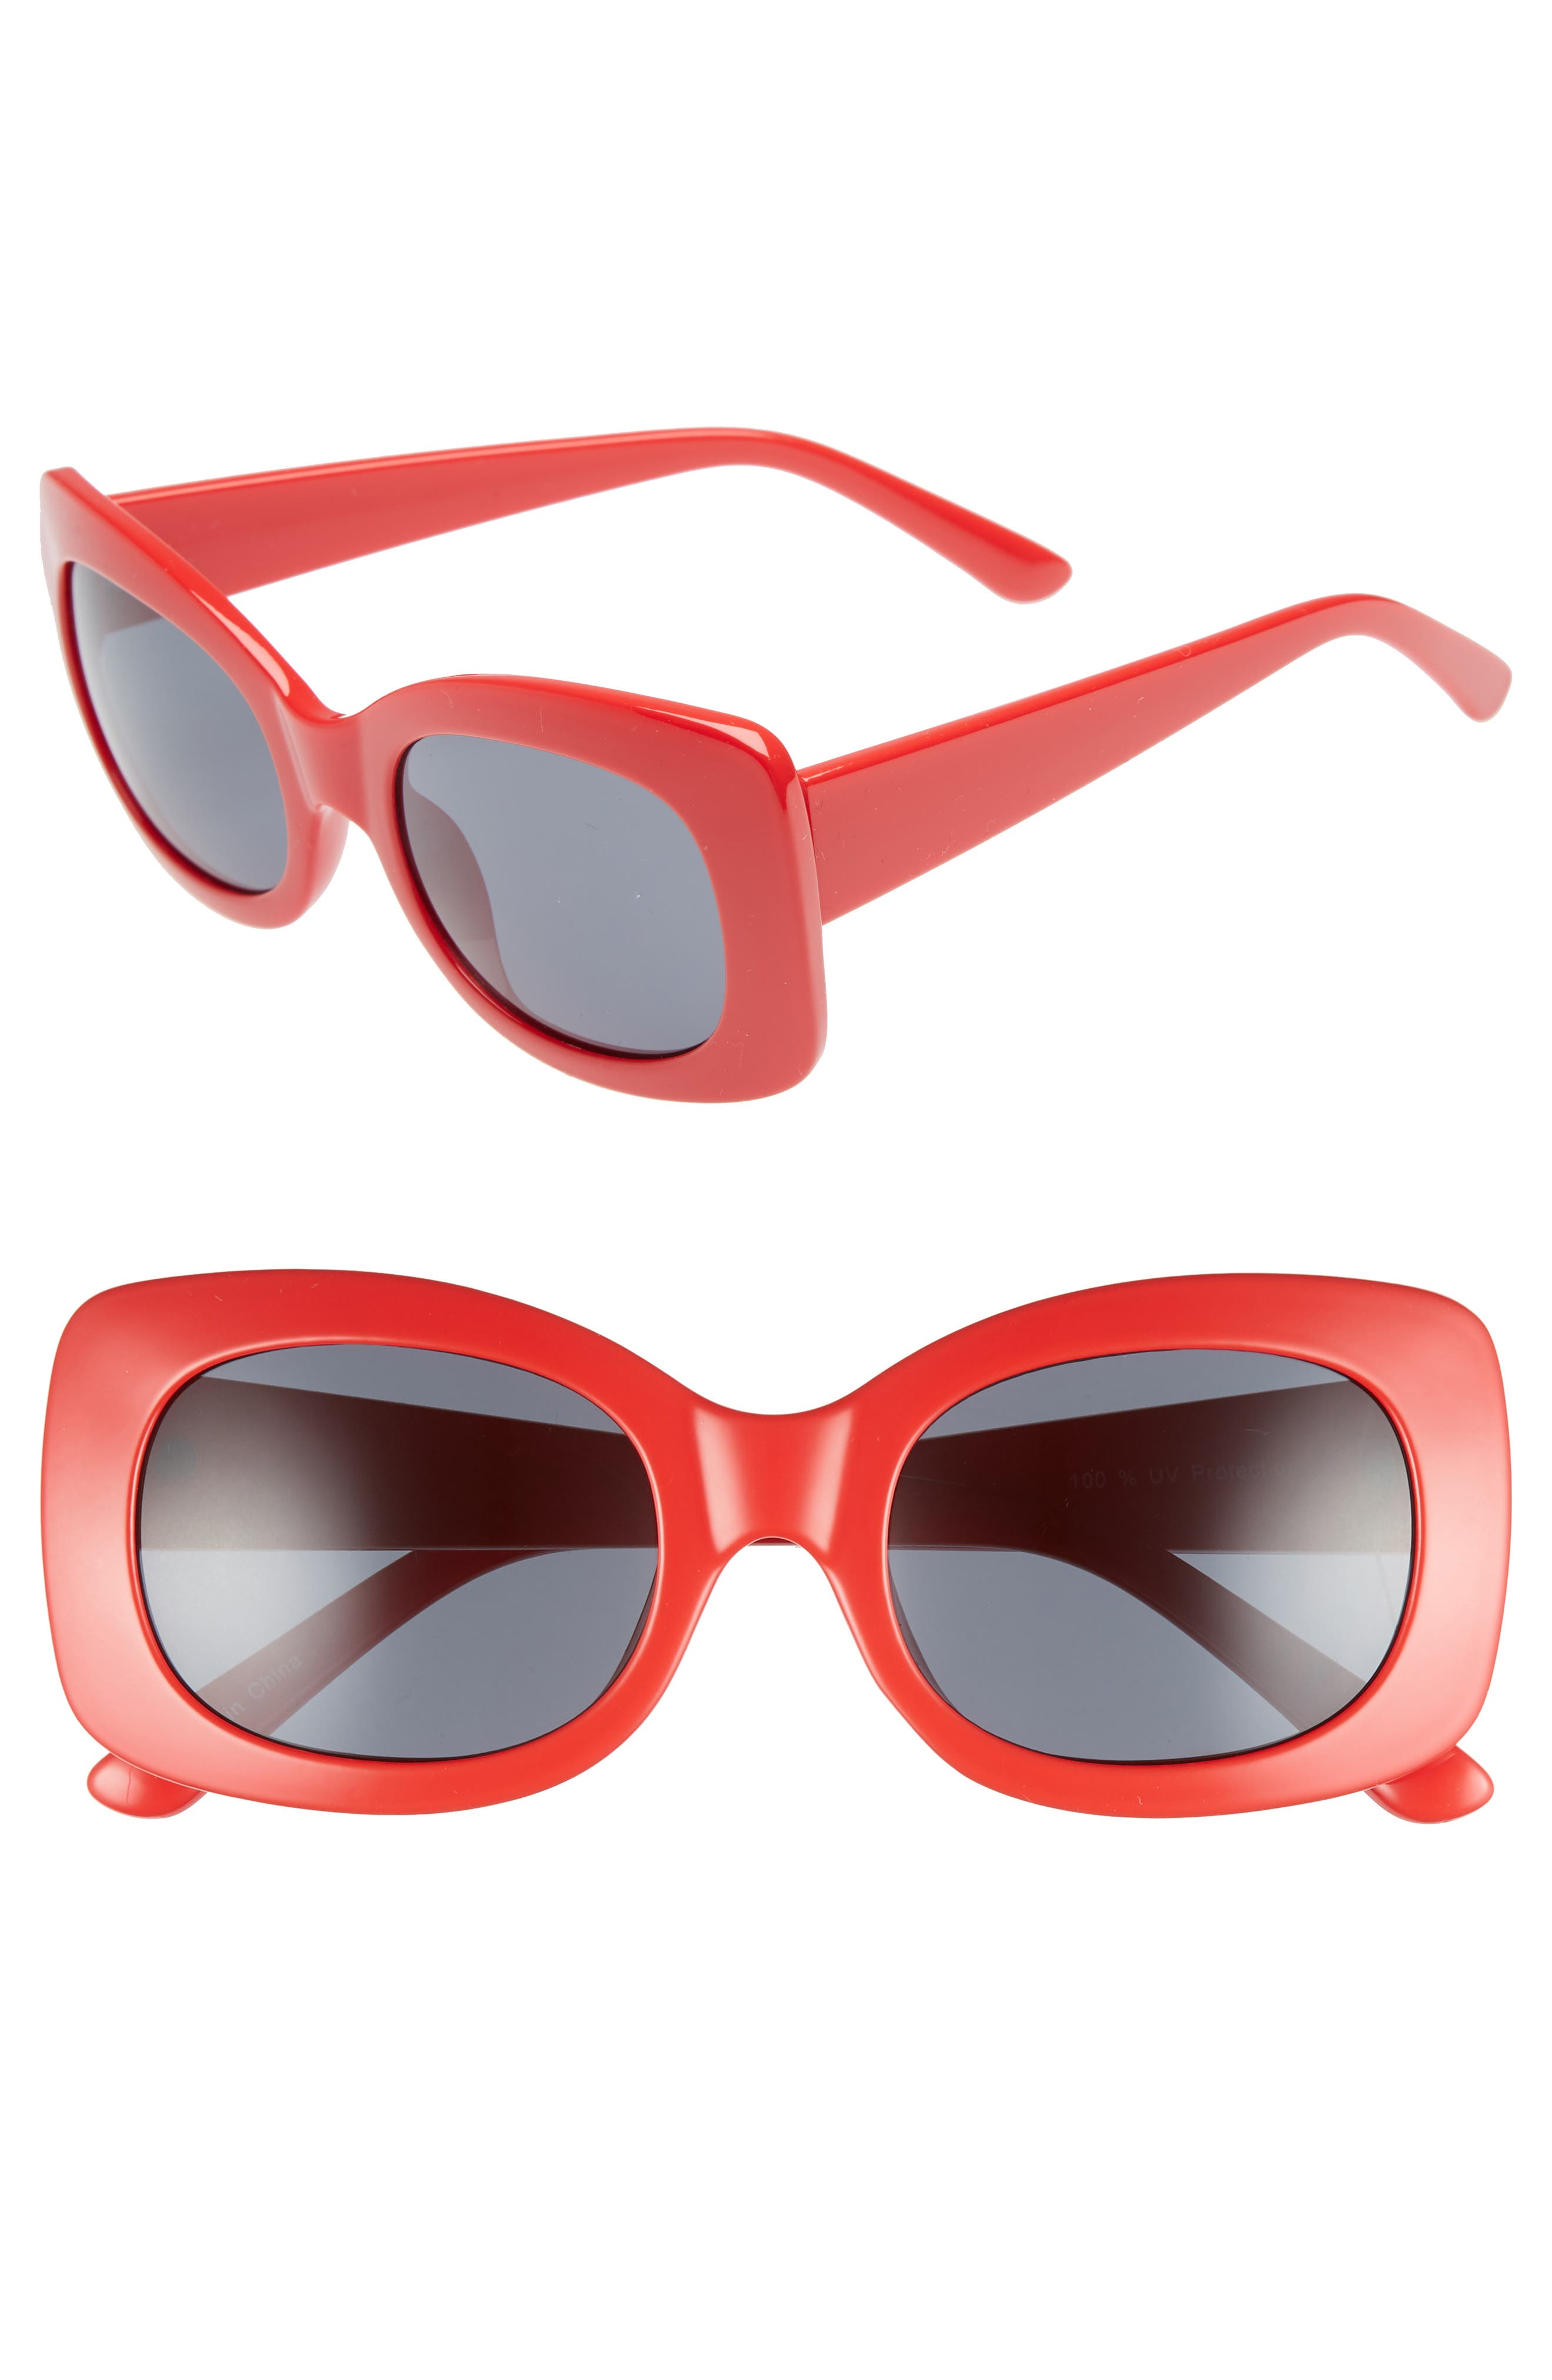 51mm Square Sunglasses,                             Main thumbnail 1, color,                             RED/ BLACK